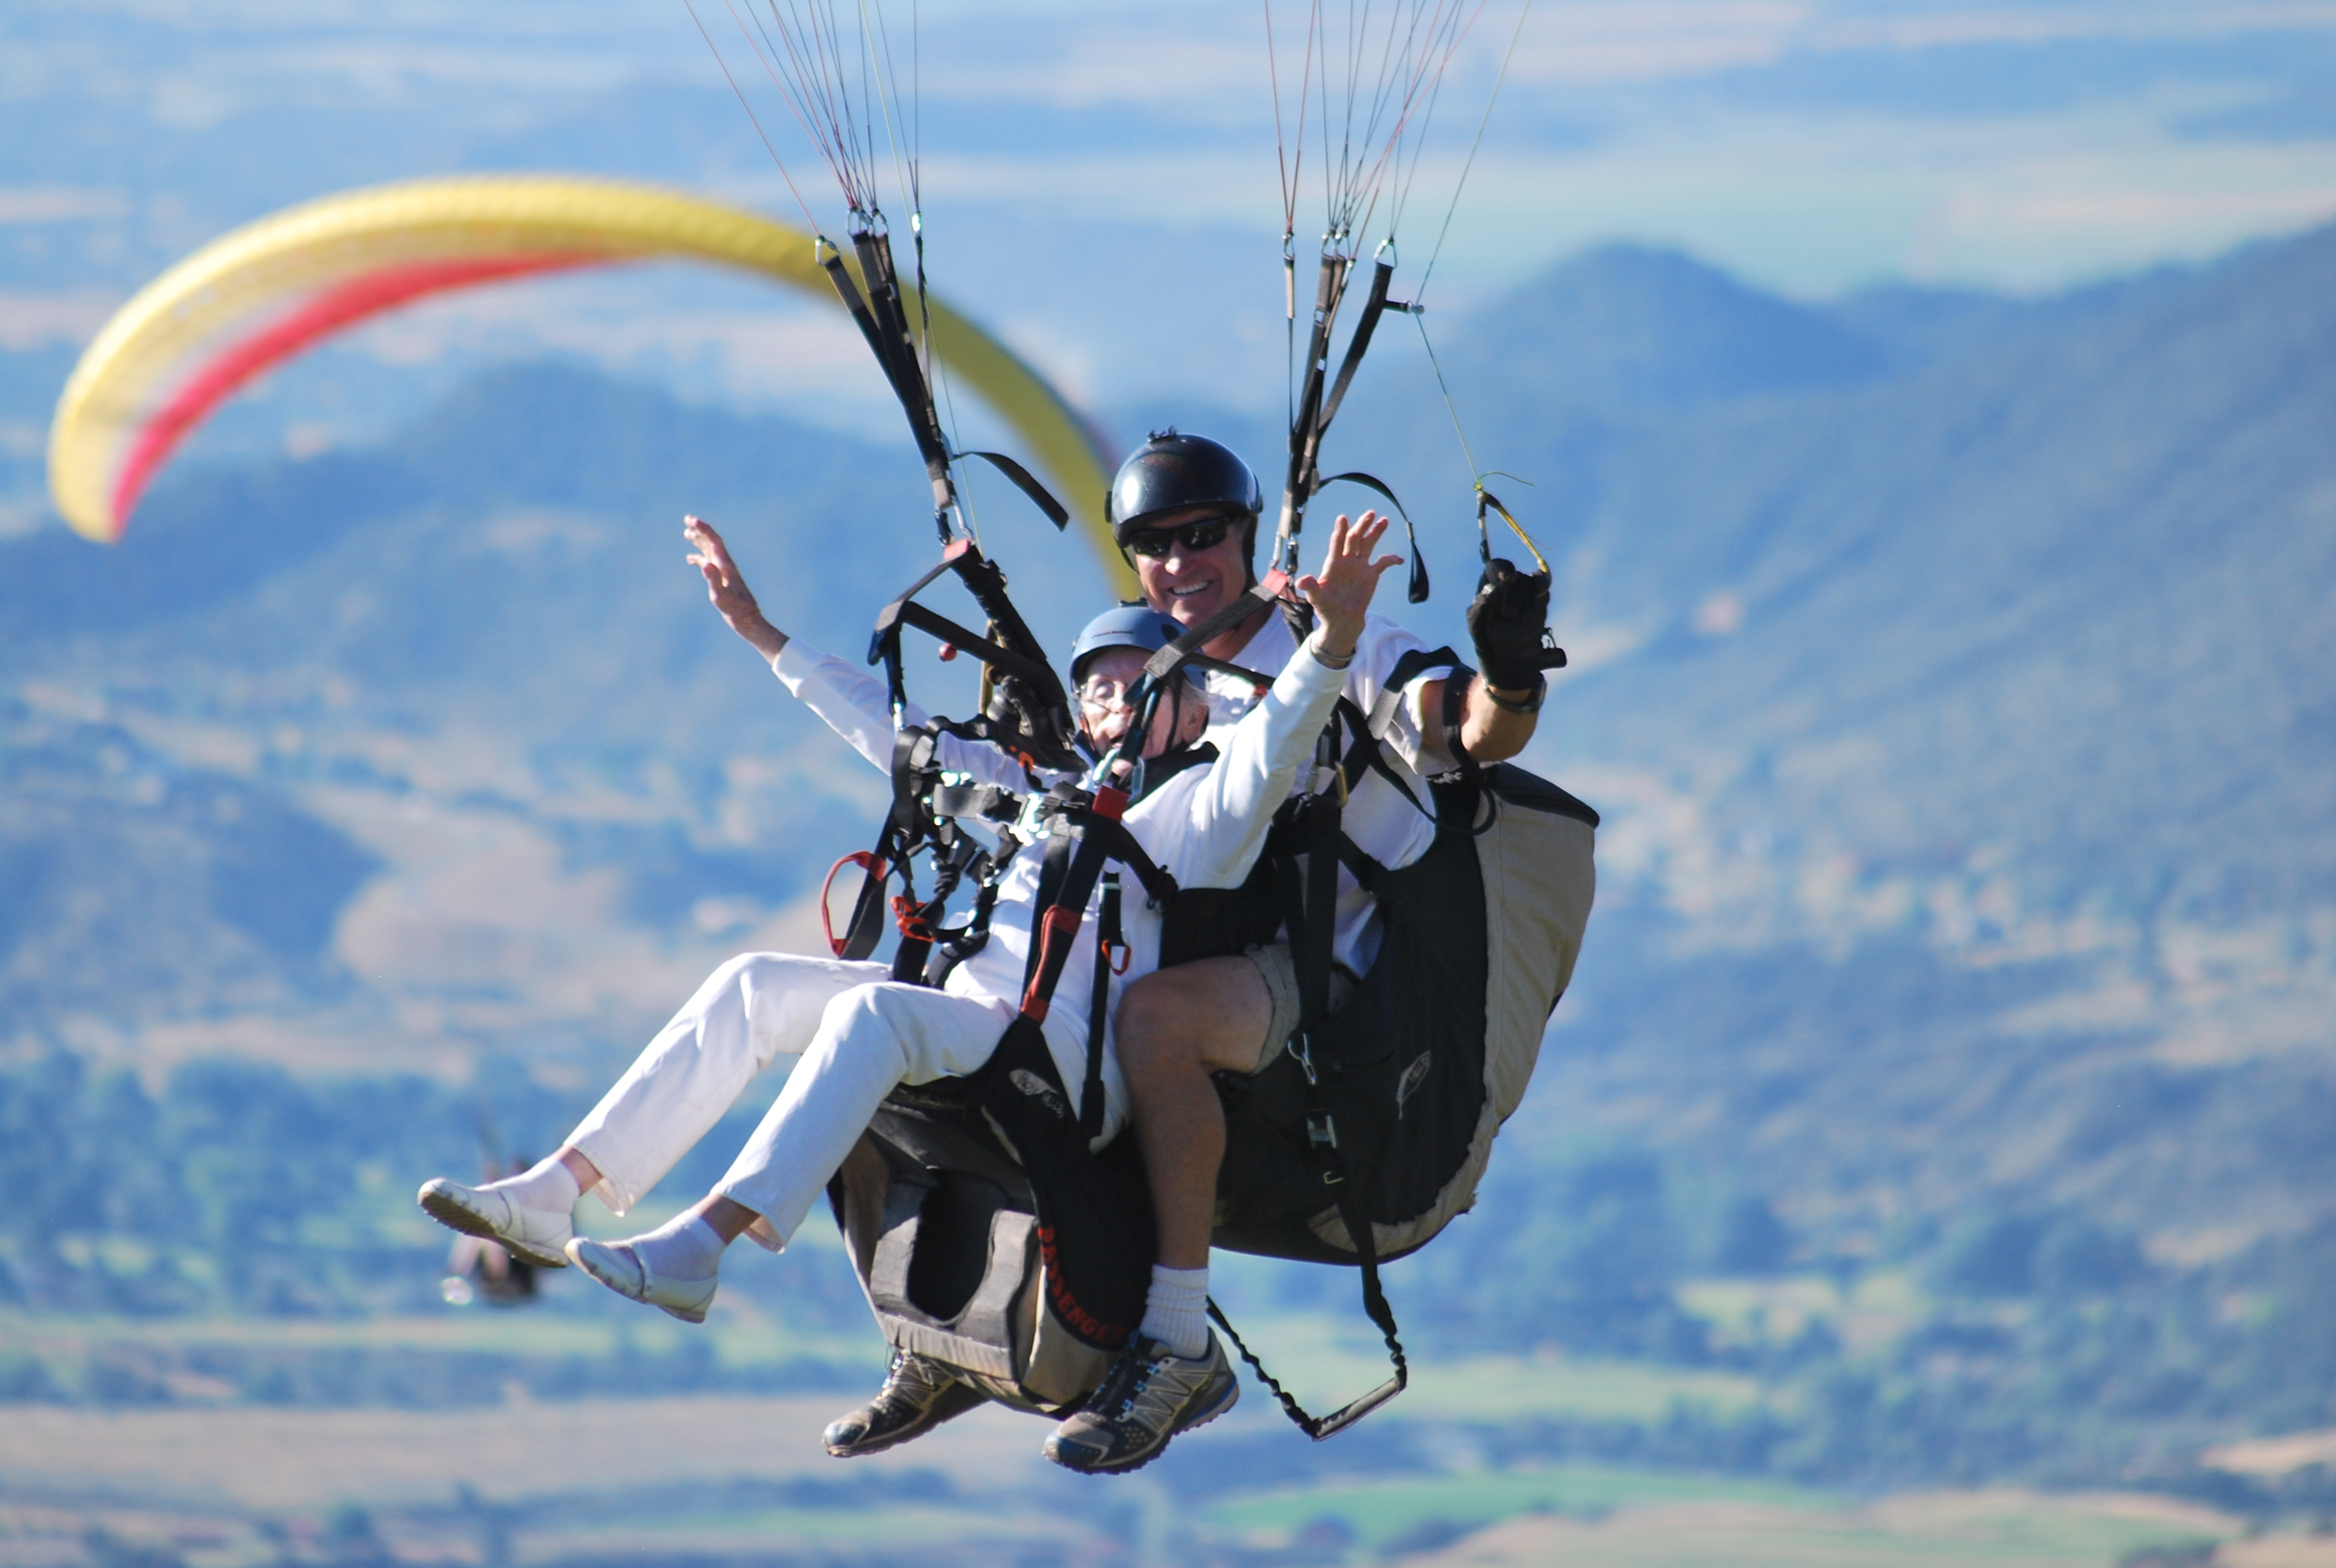 Paragliding in Glenwood Springs Colorado, Tandem Paragliding Flights